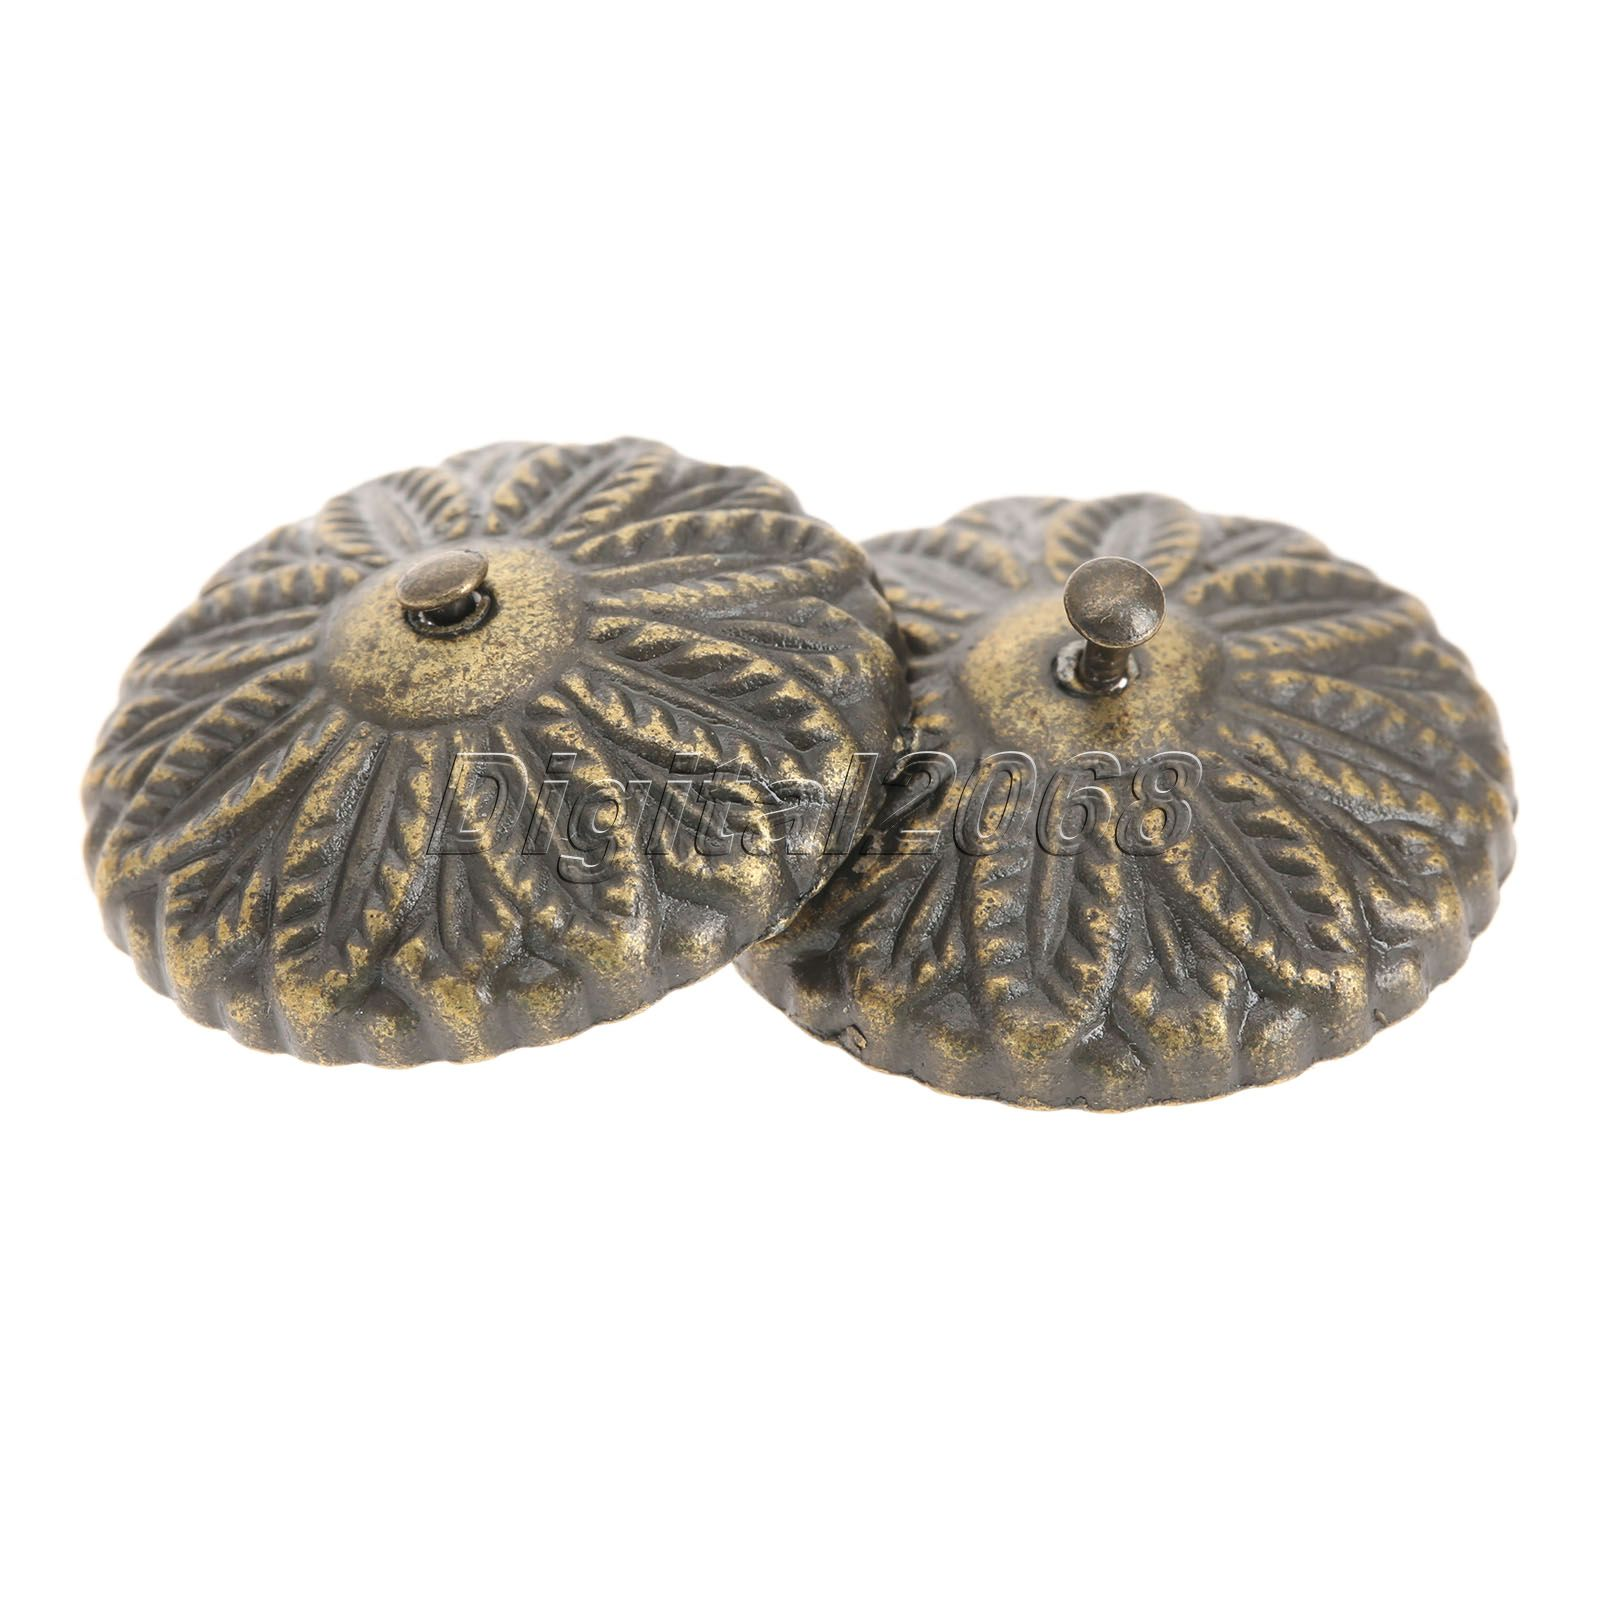 High Quality 50Pcs Bronze Vintage Decorative Furniture Upholstery Nails Tack Studs 22x6mm Free Shipping free shipping 50pcs mje15033g 50pcs mje15032g mje15033 mje15032 to 220